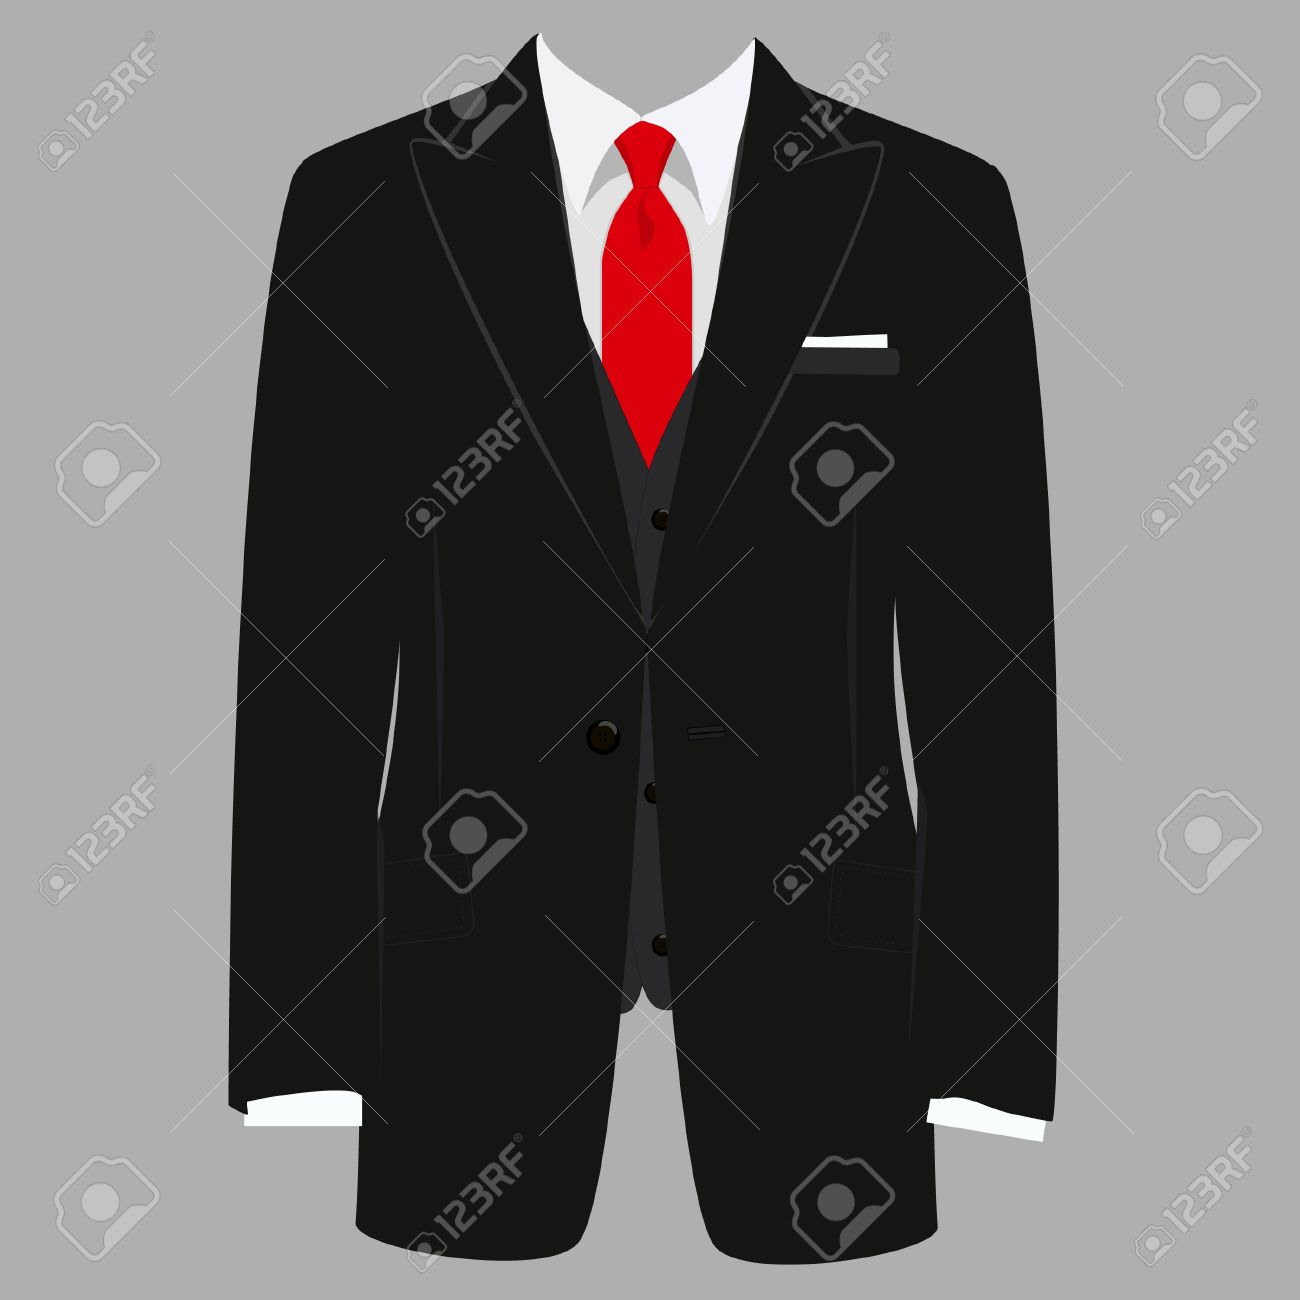 b14d1616 Vector - Vector iillustration of black man suit with red tie and white shirt  on grey background. Business suit, business, mens suit, man in suit